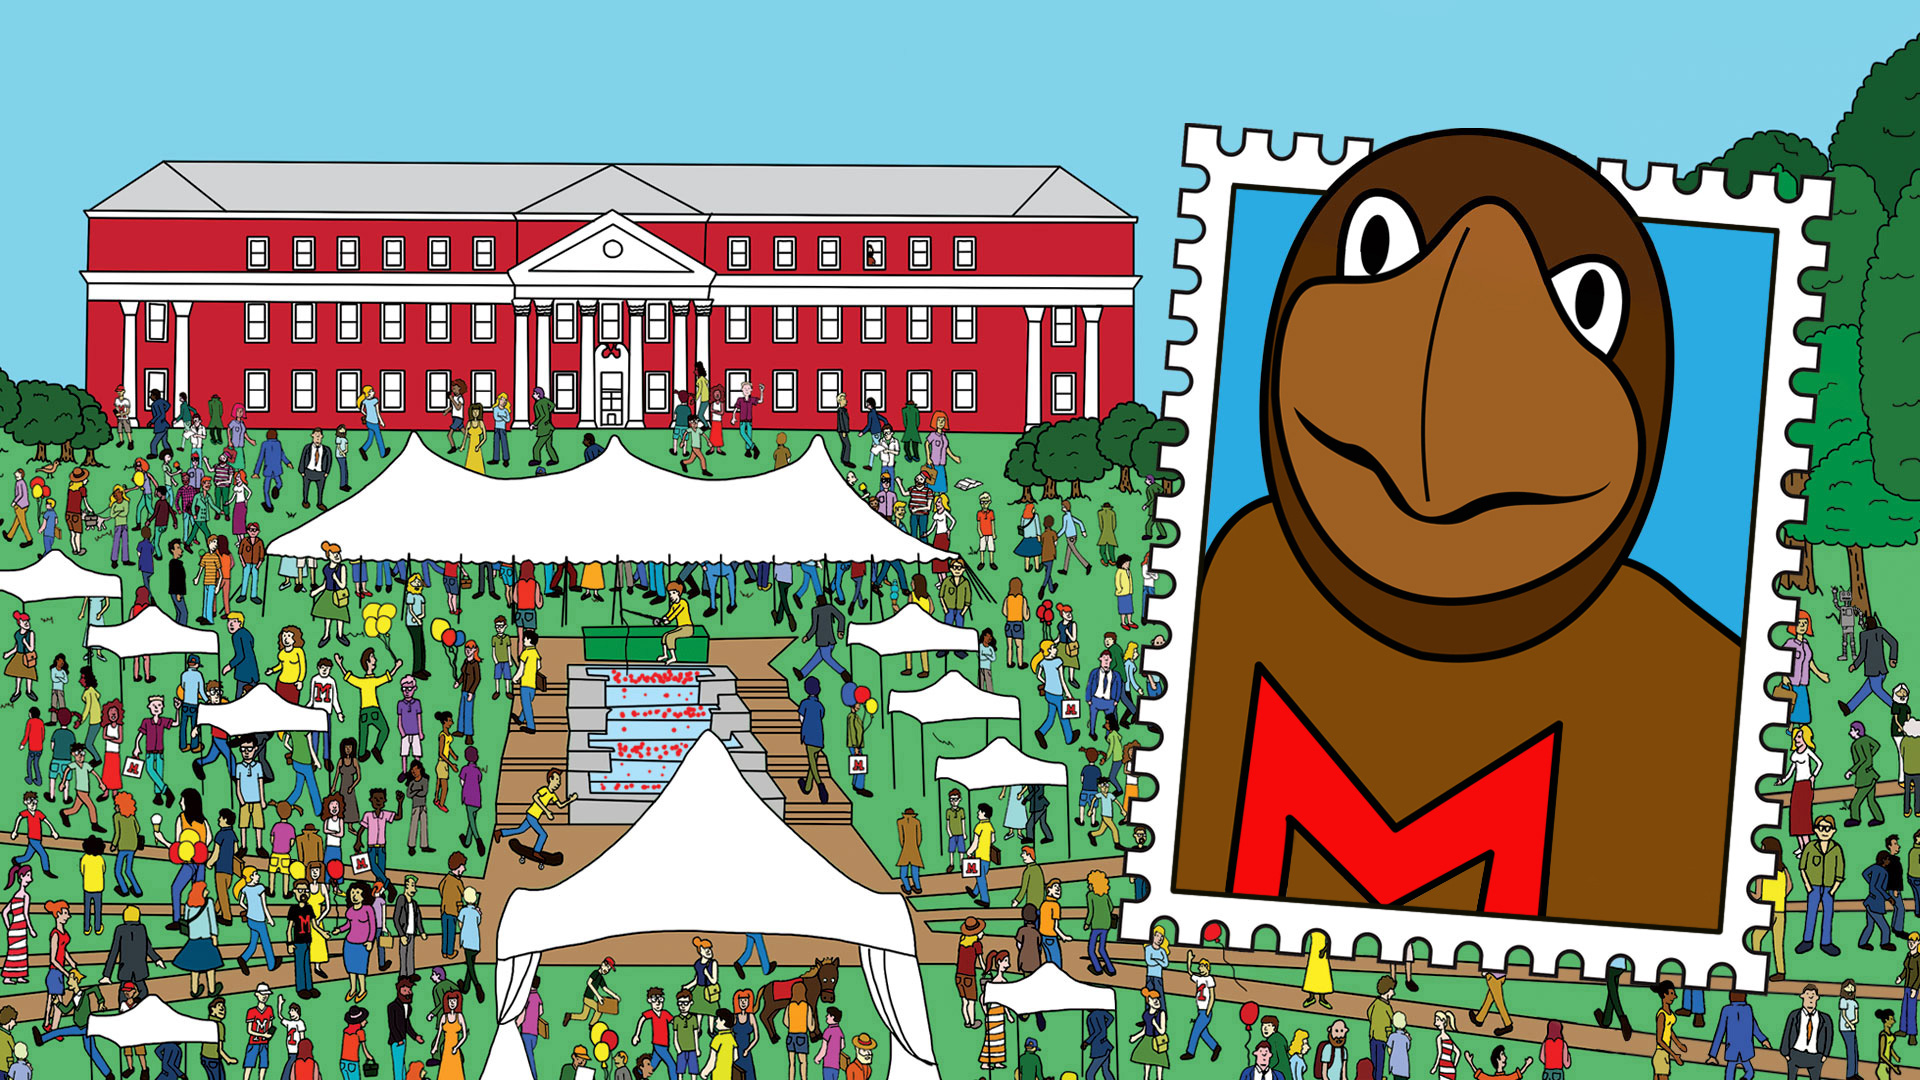 Find Testudo in this Maryland Day Scavenger Hunt